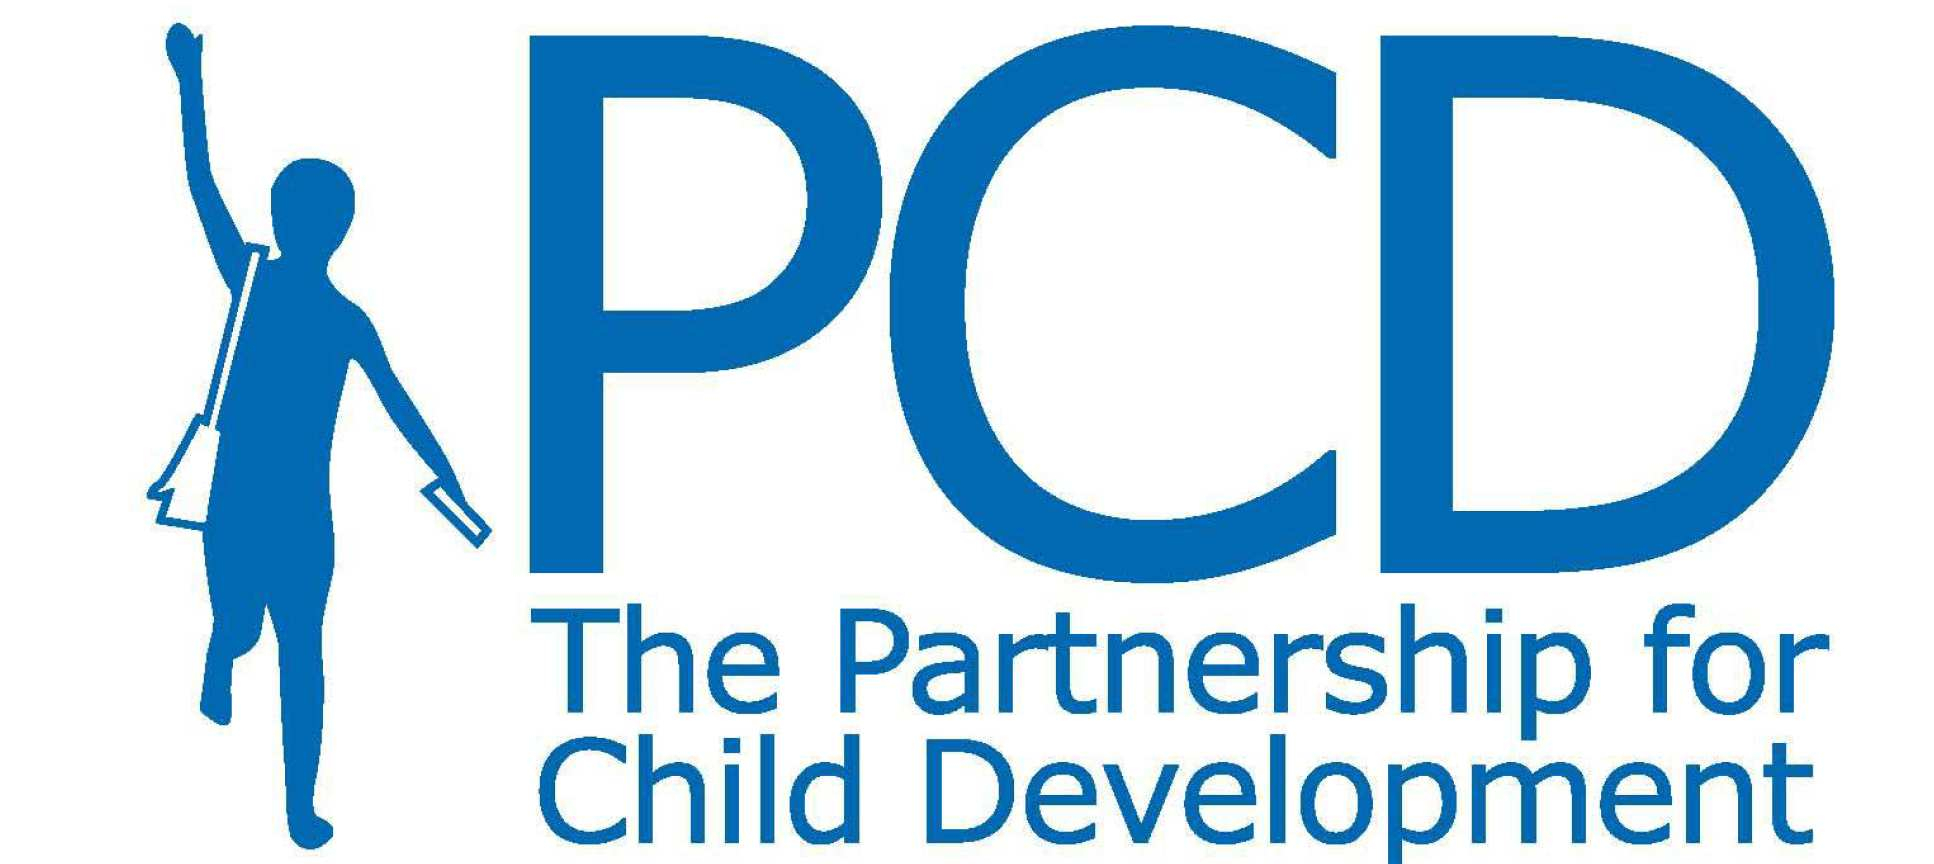 The Partnership for Child Development